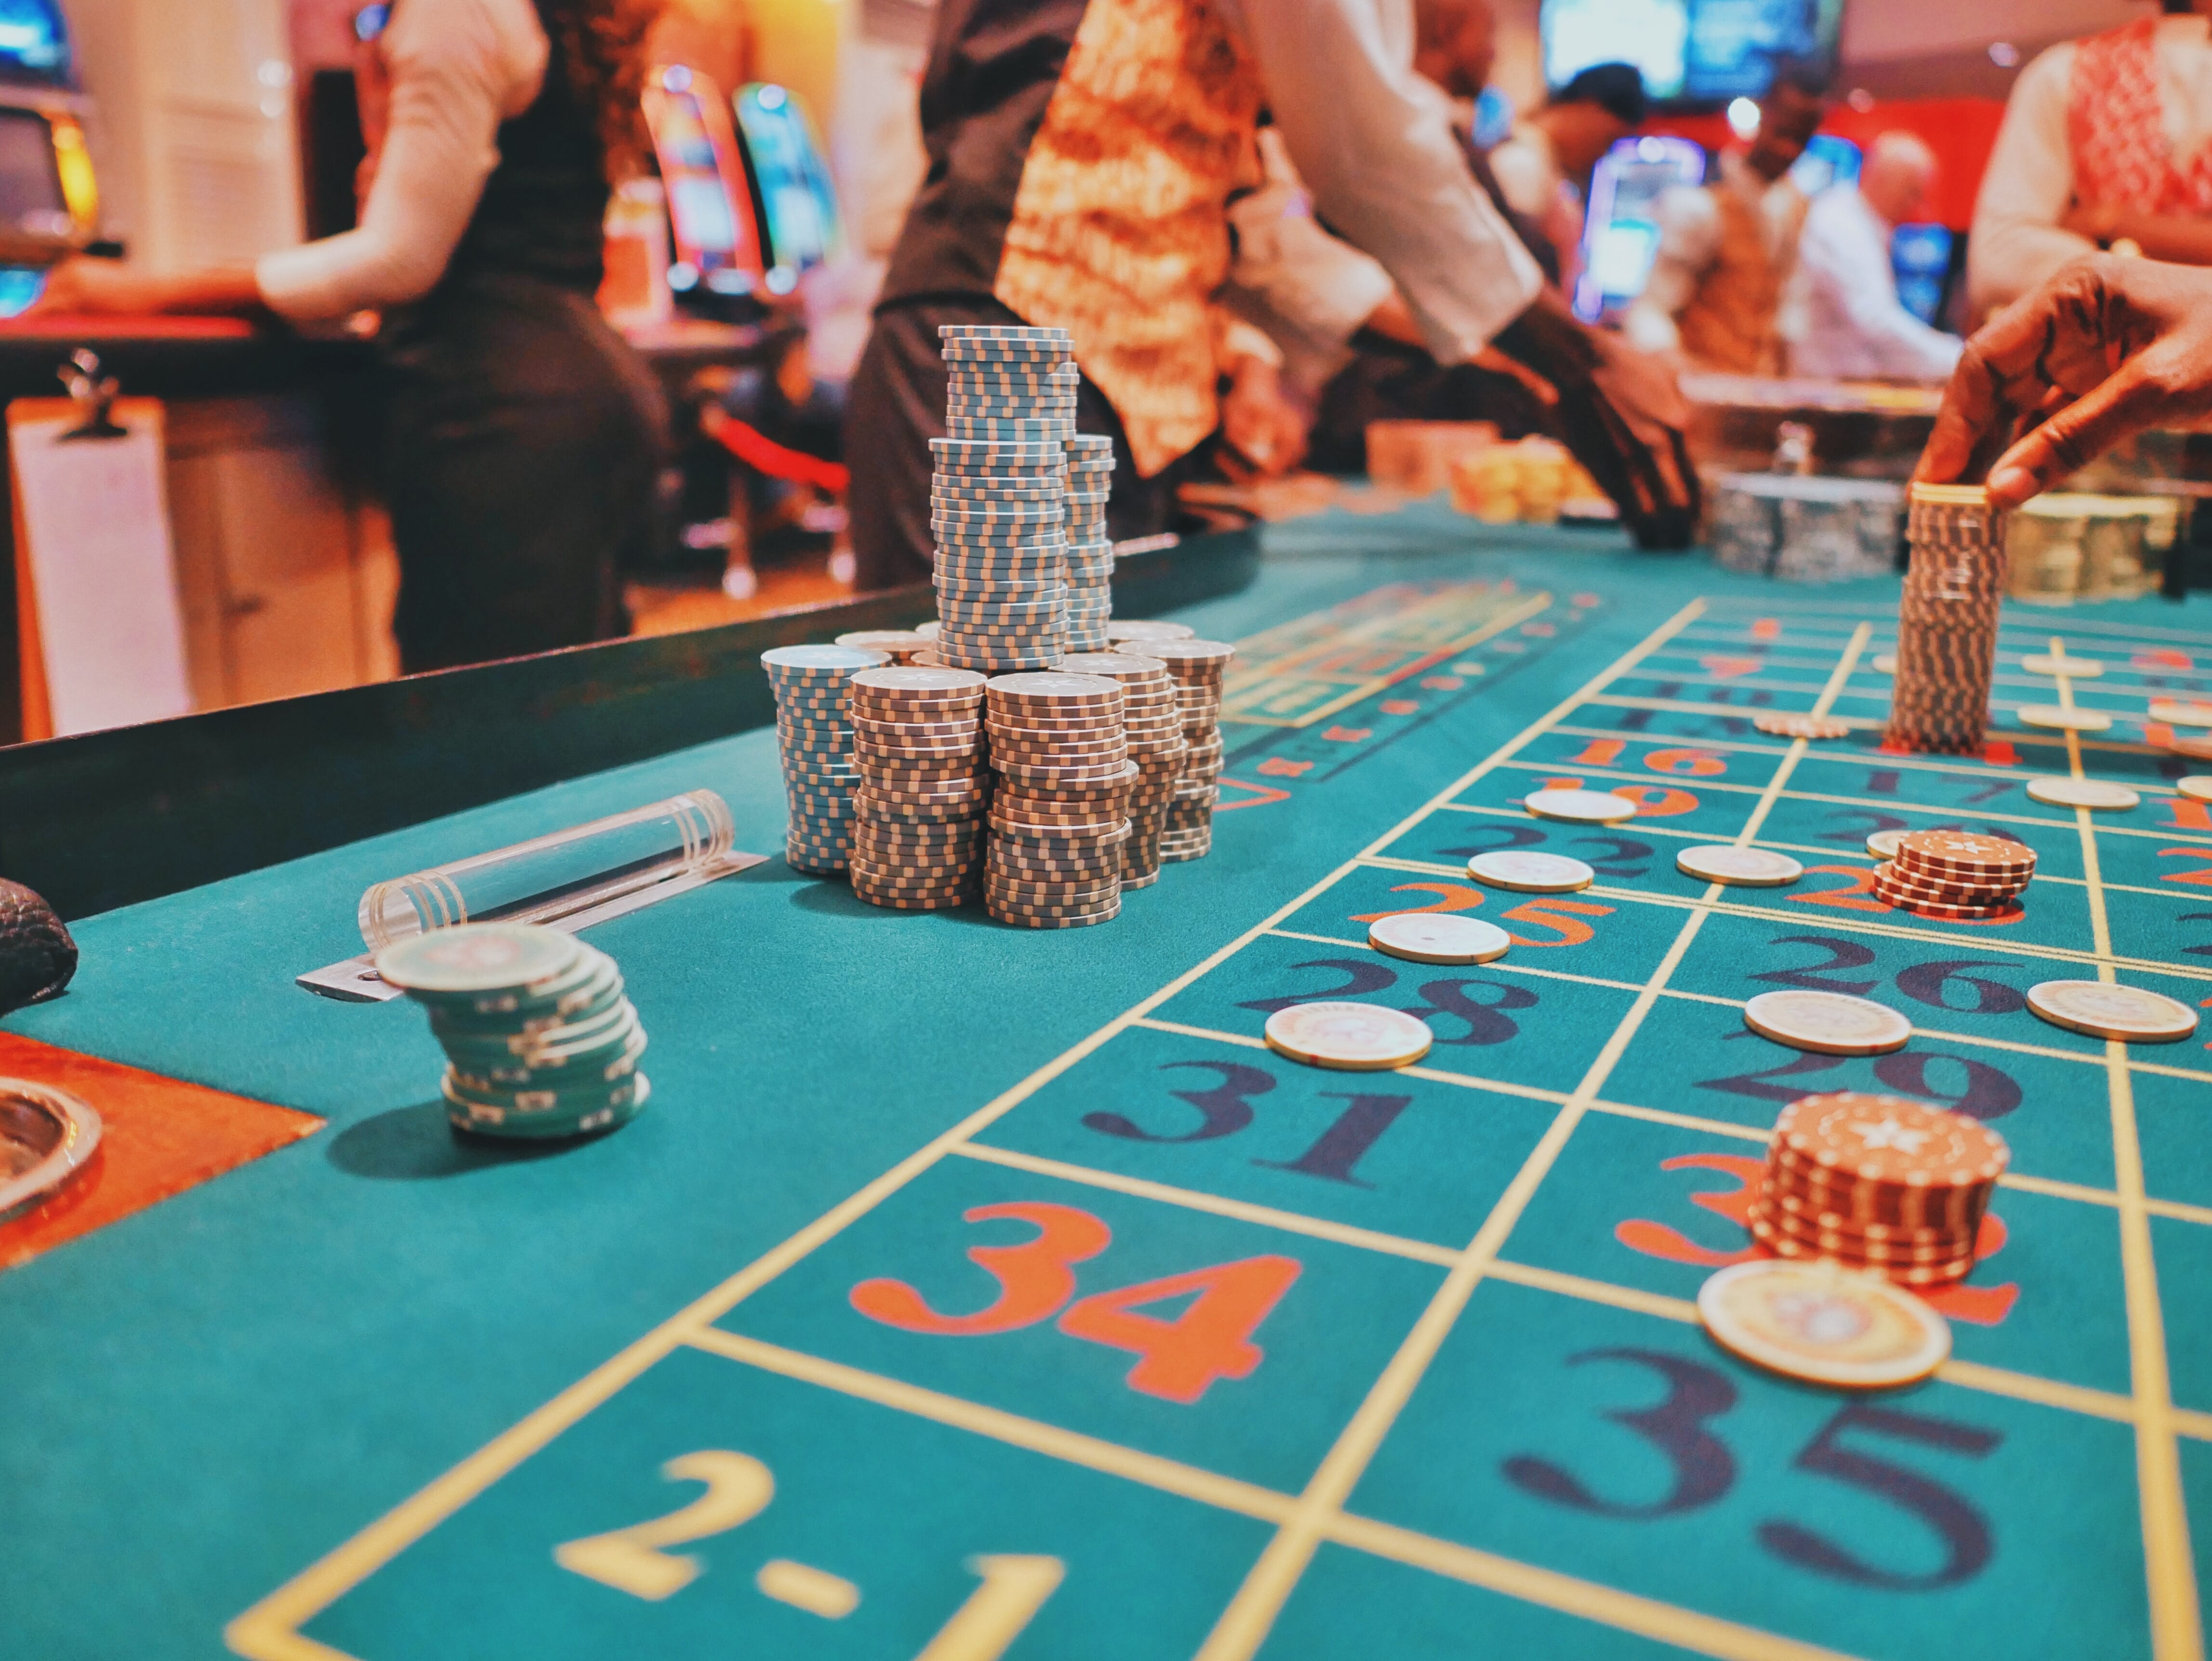 Gaming table with stacks of chips; image by Kay, via Unsplash.com.